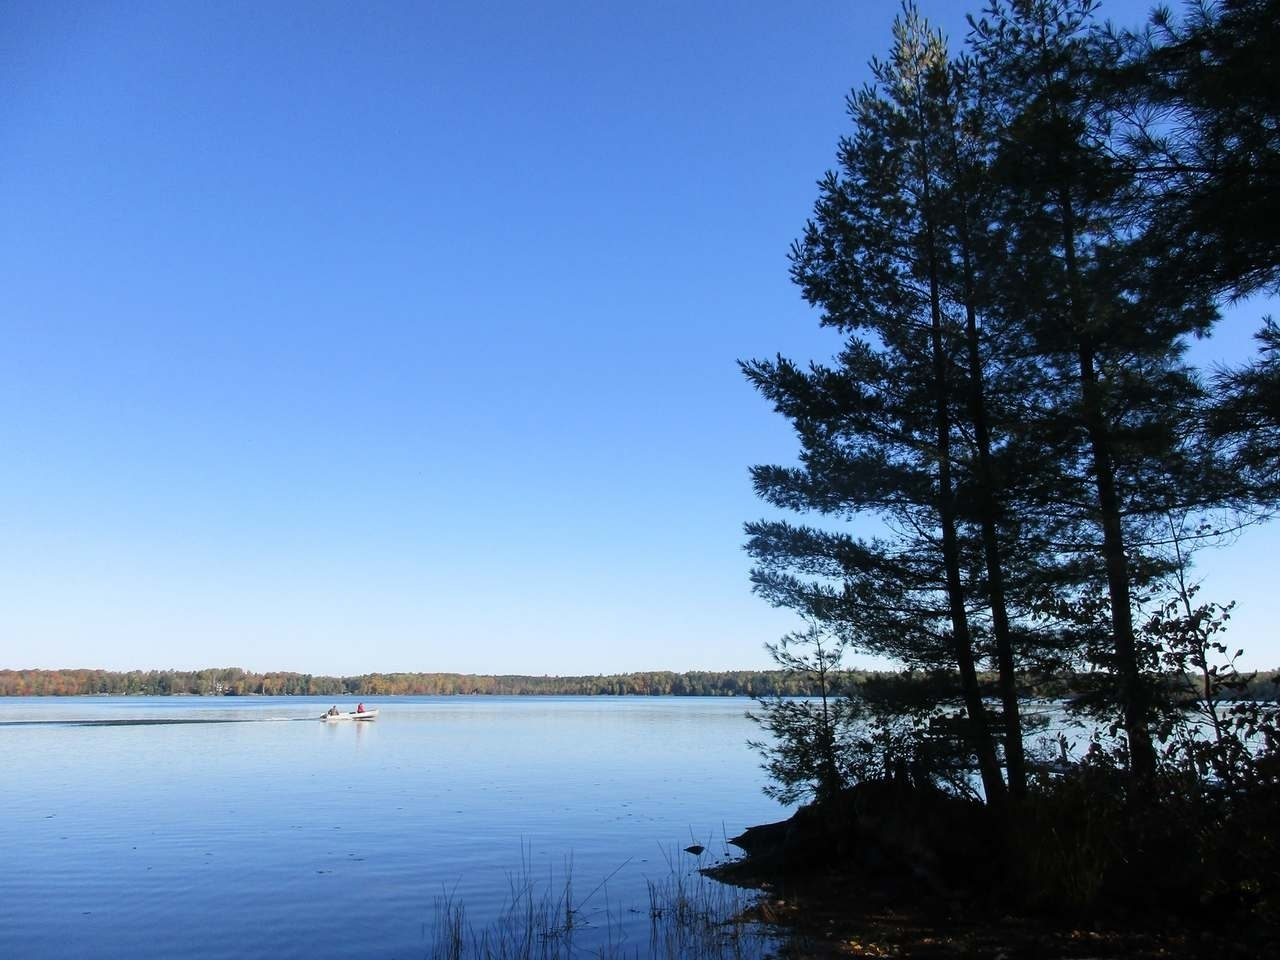 Rare Offering on Clear Lake of the Manitowish Chain of Lakes. End of the road privacy. This property offers 326 +/- feet of perfect frontage as well as 2.95+/- acres of well wooded Northern Wisconsin Solitude. The location of the improvements on this parcel allow for expansion or the construction of a larger residence - there is a gorgeous building site located adjacent to the cabin. New survey (2018) clearly shows all lines and corners. New conventional septic (2015). The property adjoins 1,000's of acres of the Northern Highland American Legion State forest which ensures the current secludedness will last a lifetime. Whether you're looking for a buildable lot or property with a solid 2 Bedroom home with a detached 2 car garage on the best lake of the Manitowish Chain you've just found both.